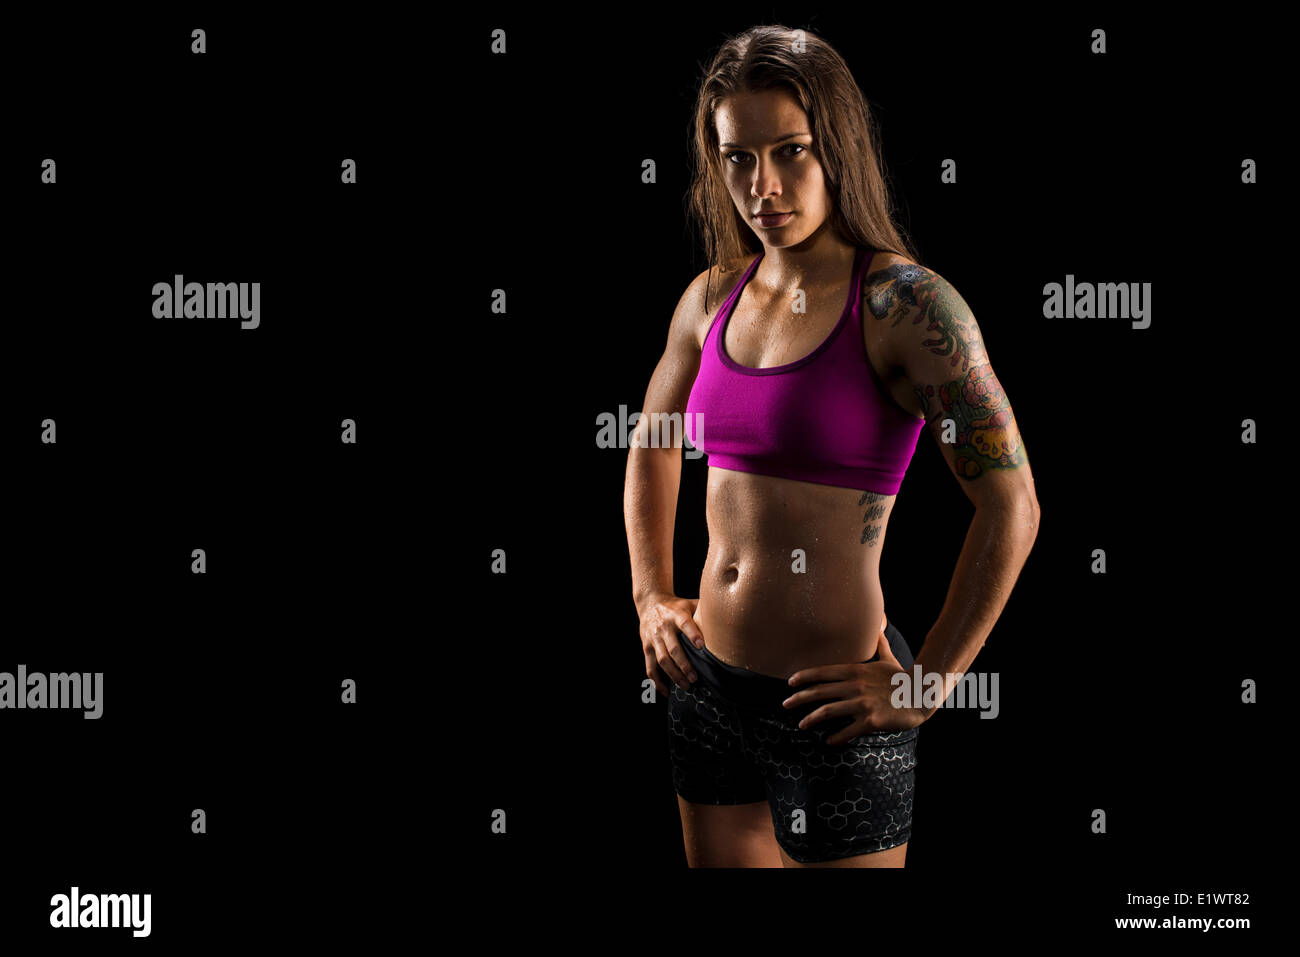 Healthy muscular female athlete wearing athletic wear - Stock Image